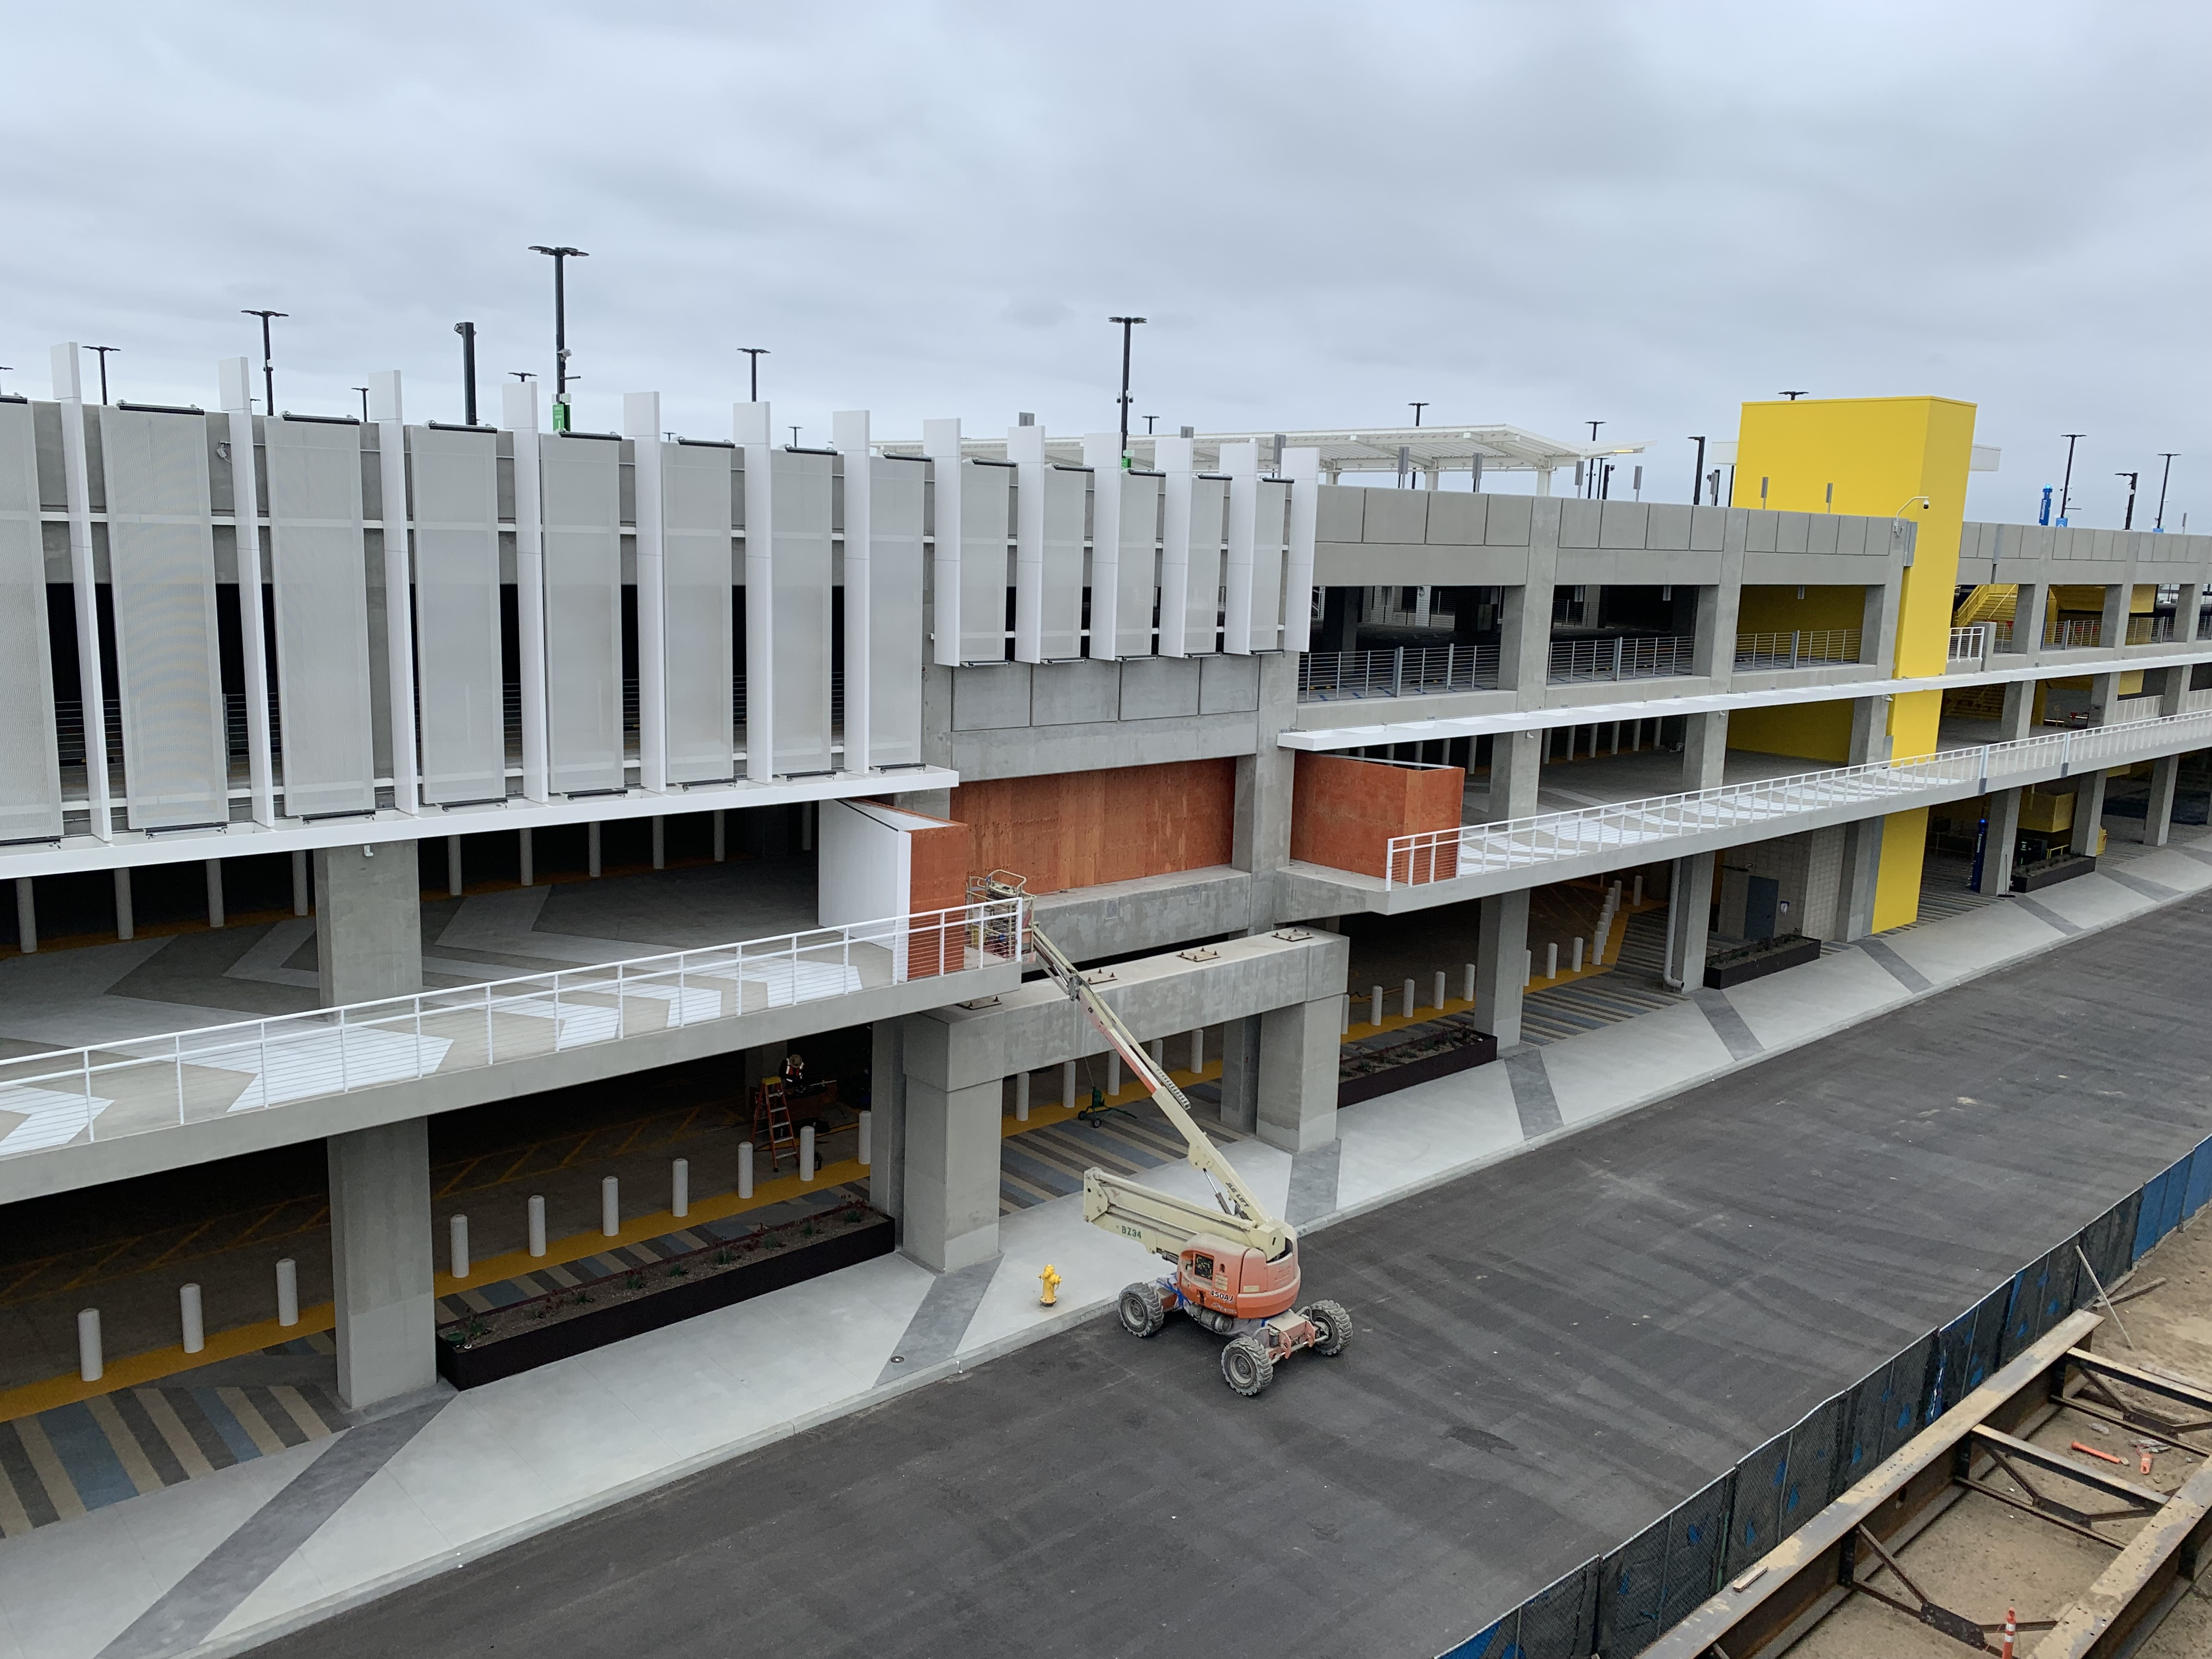 A view of where a pedestrian bridge will land to connect the Intermodal Transportation Facility-West to the Automated People Mover station.